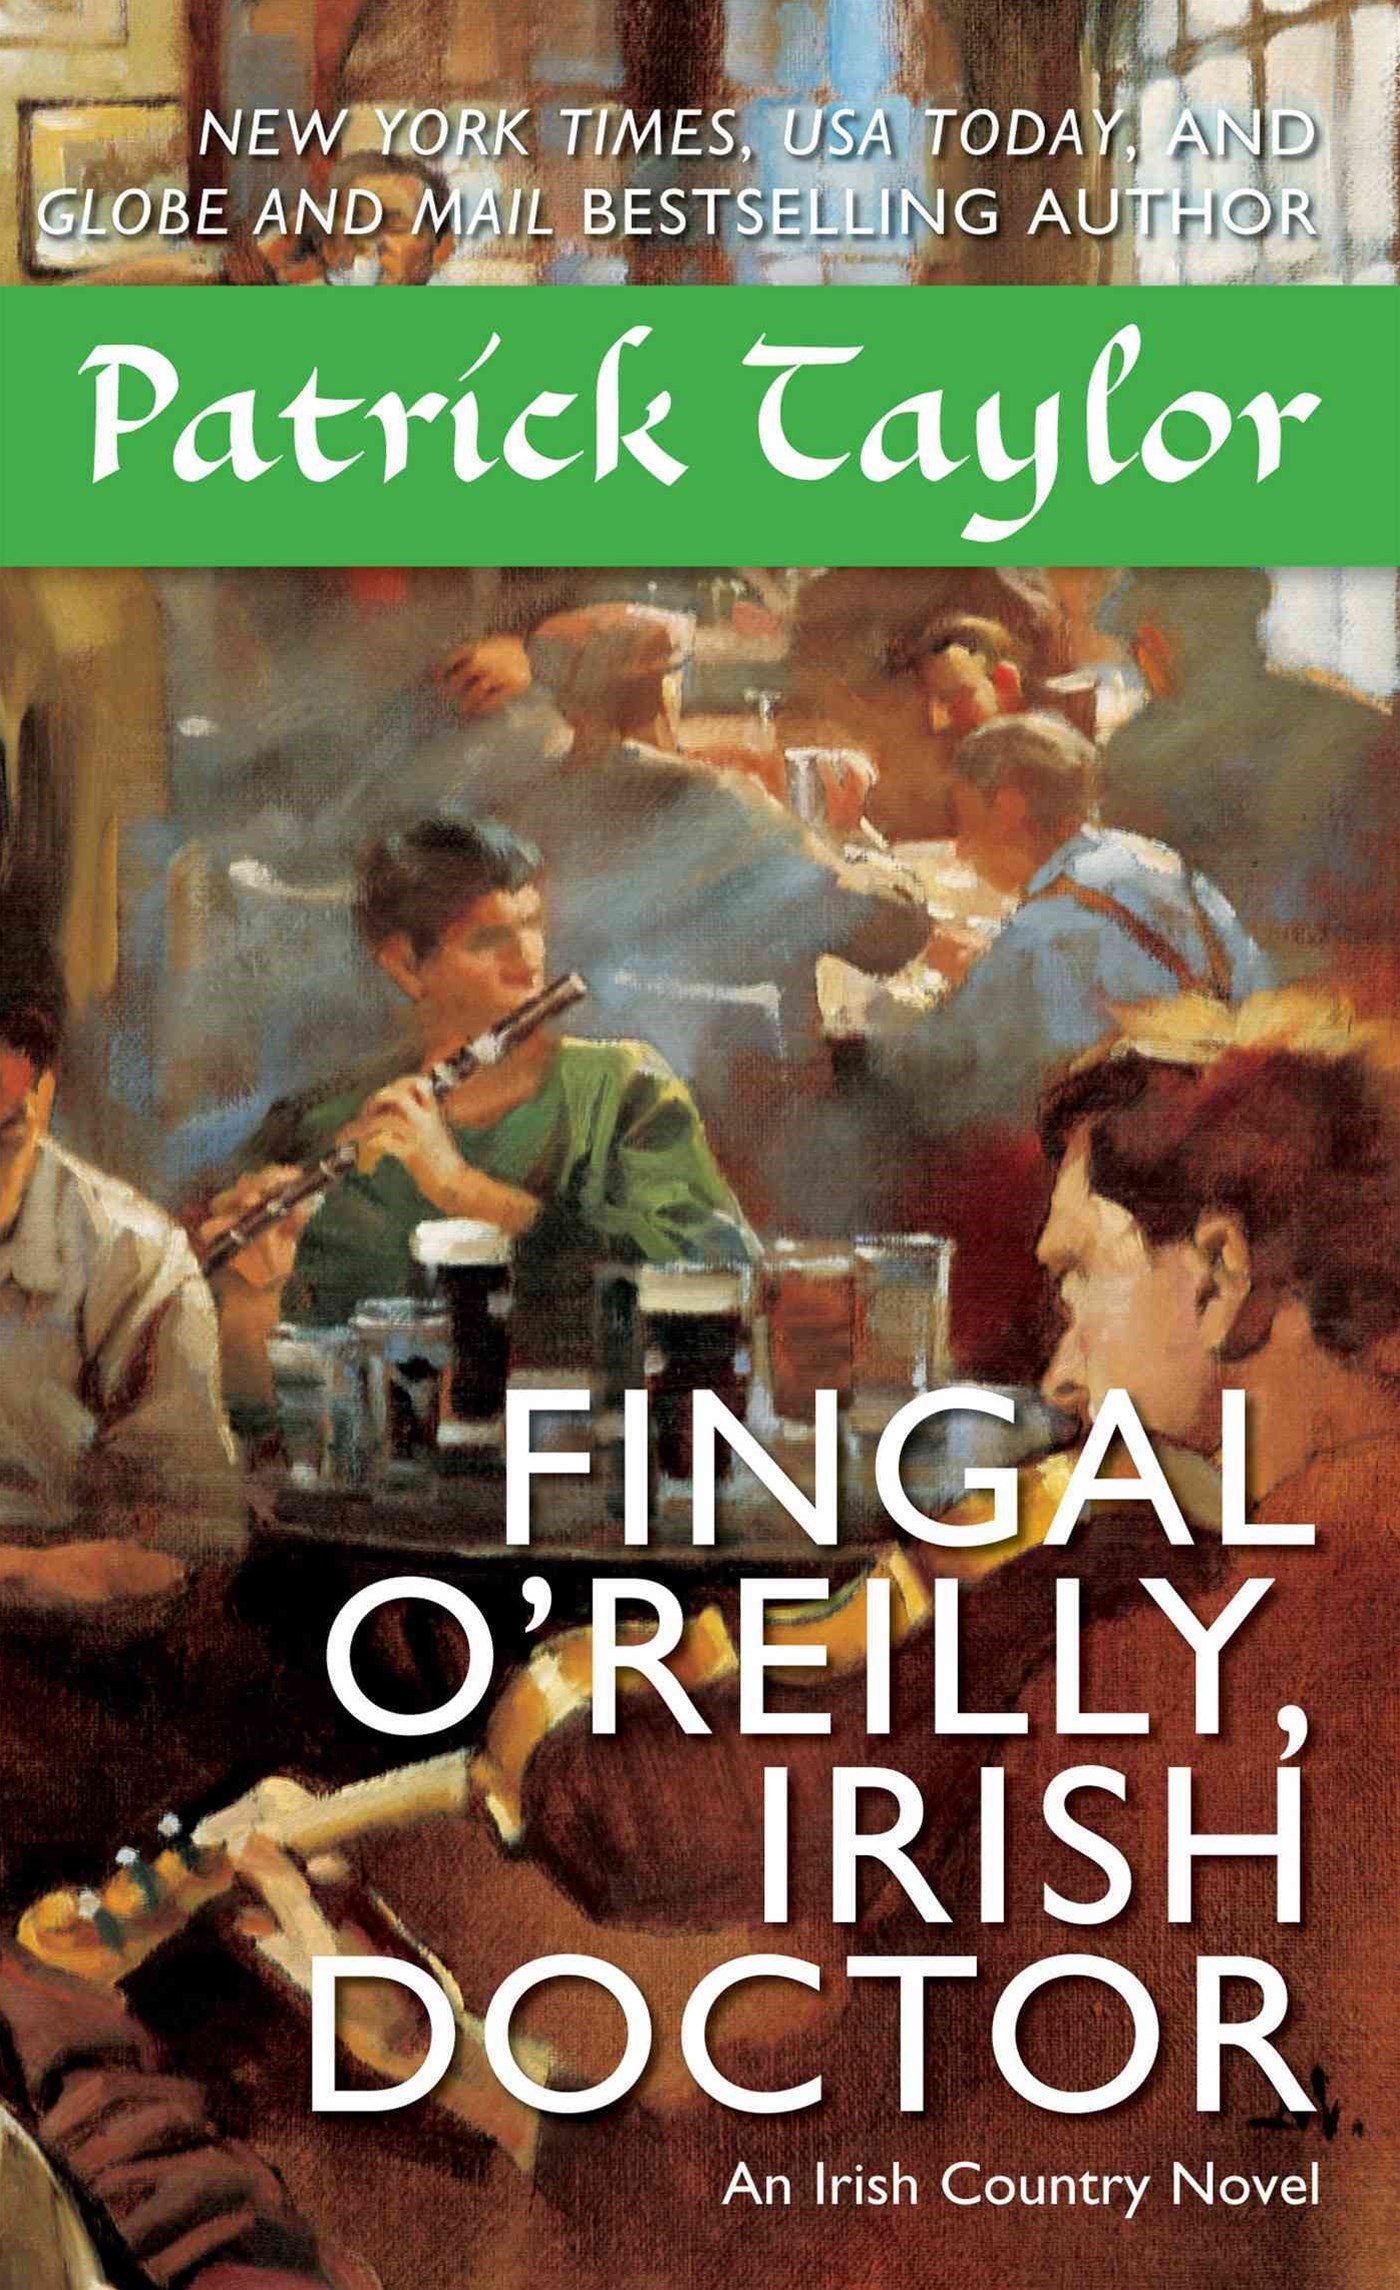 Fingal o'Reilly, Irish Doctor